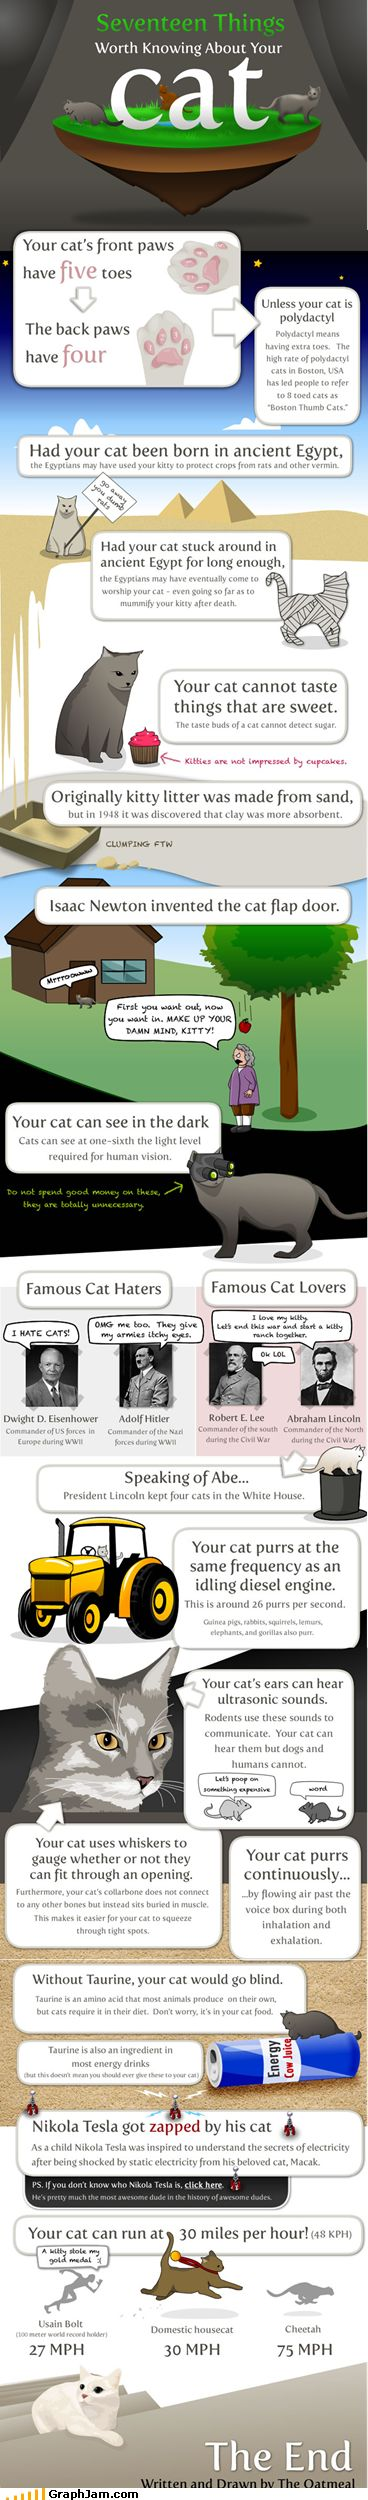 Seventeen things worth knowing about your cat.